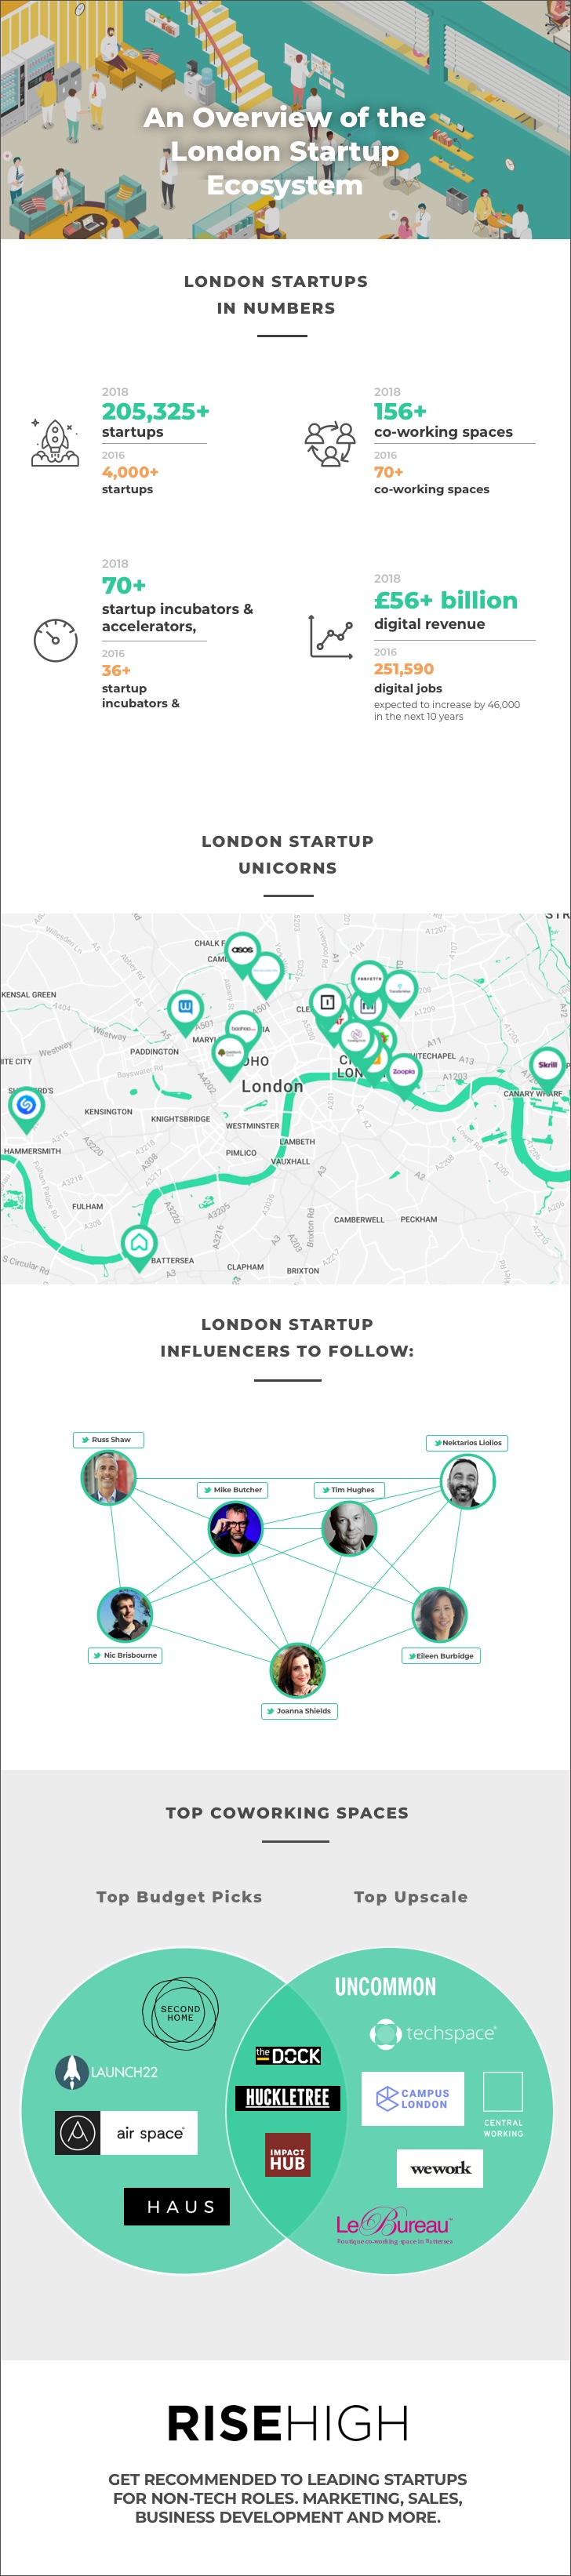 London Startup Guide Infographic